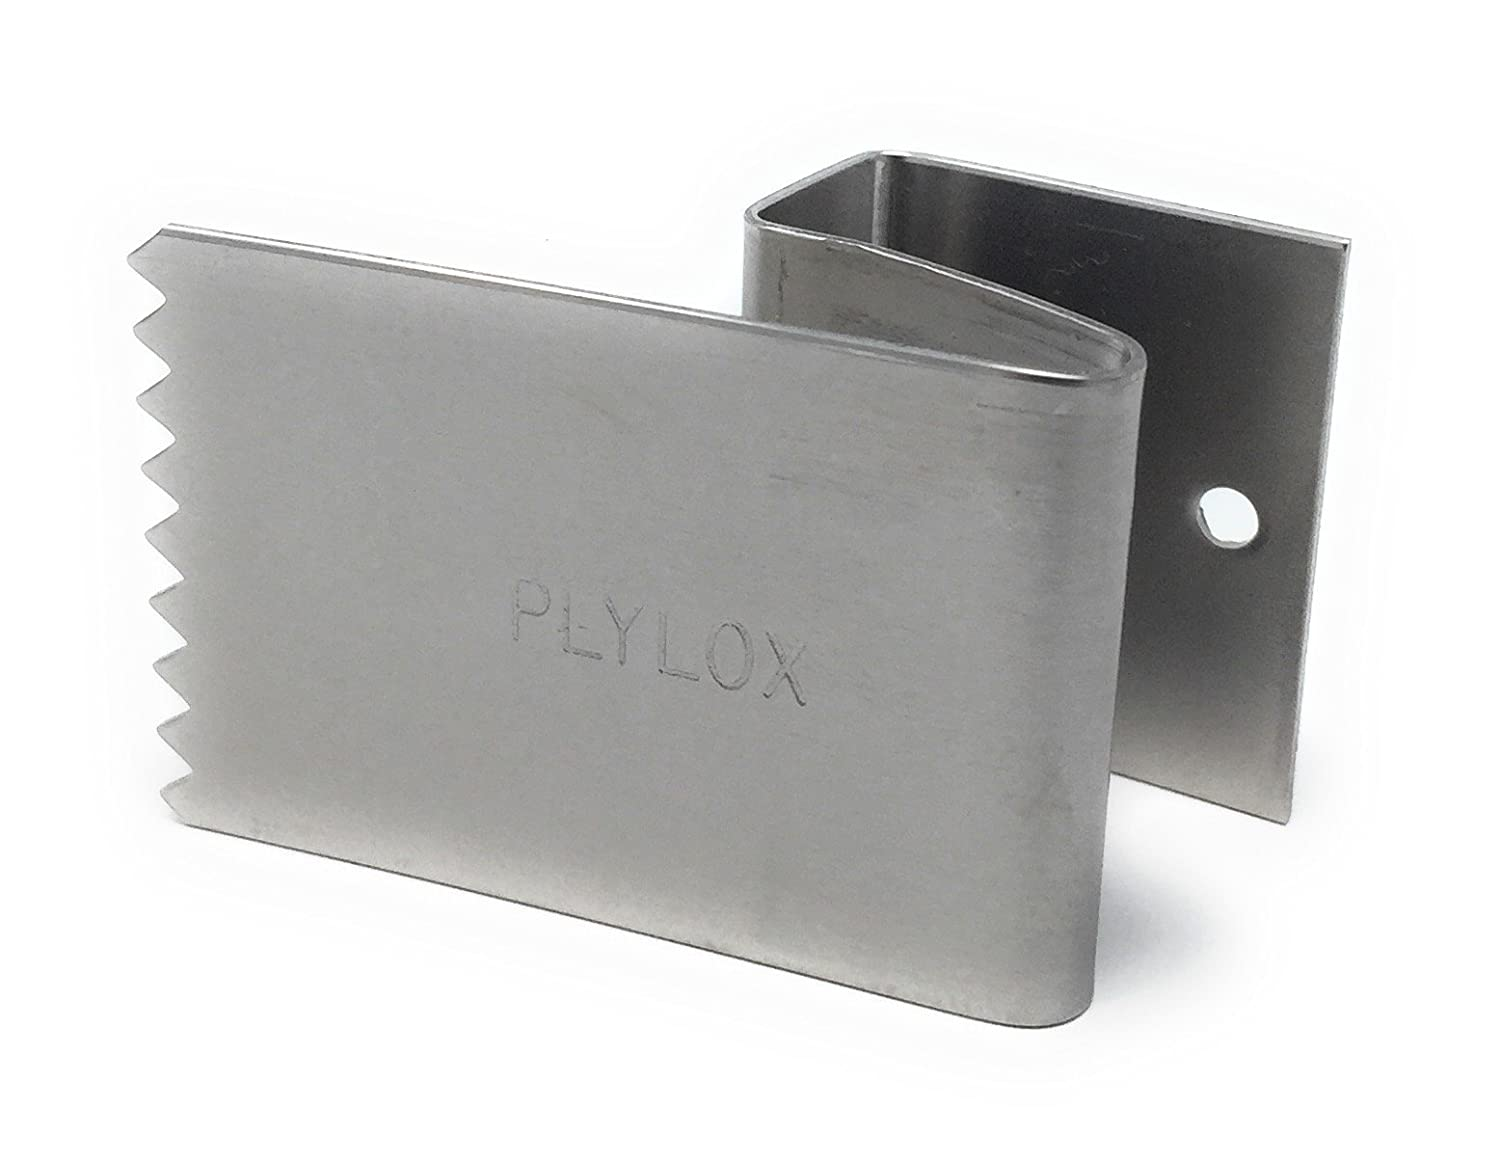 Plylox Hurricane Window Clips 20 Pack Stainless Steel 34